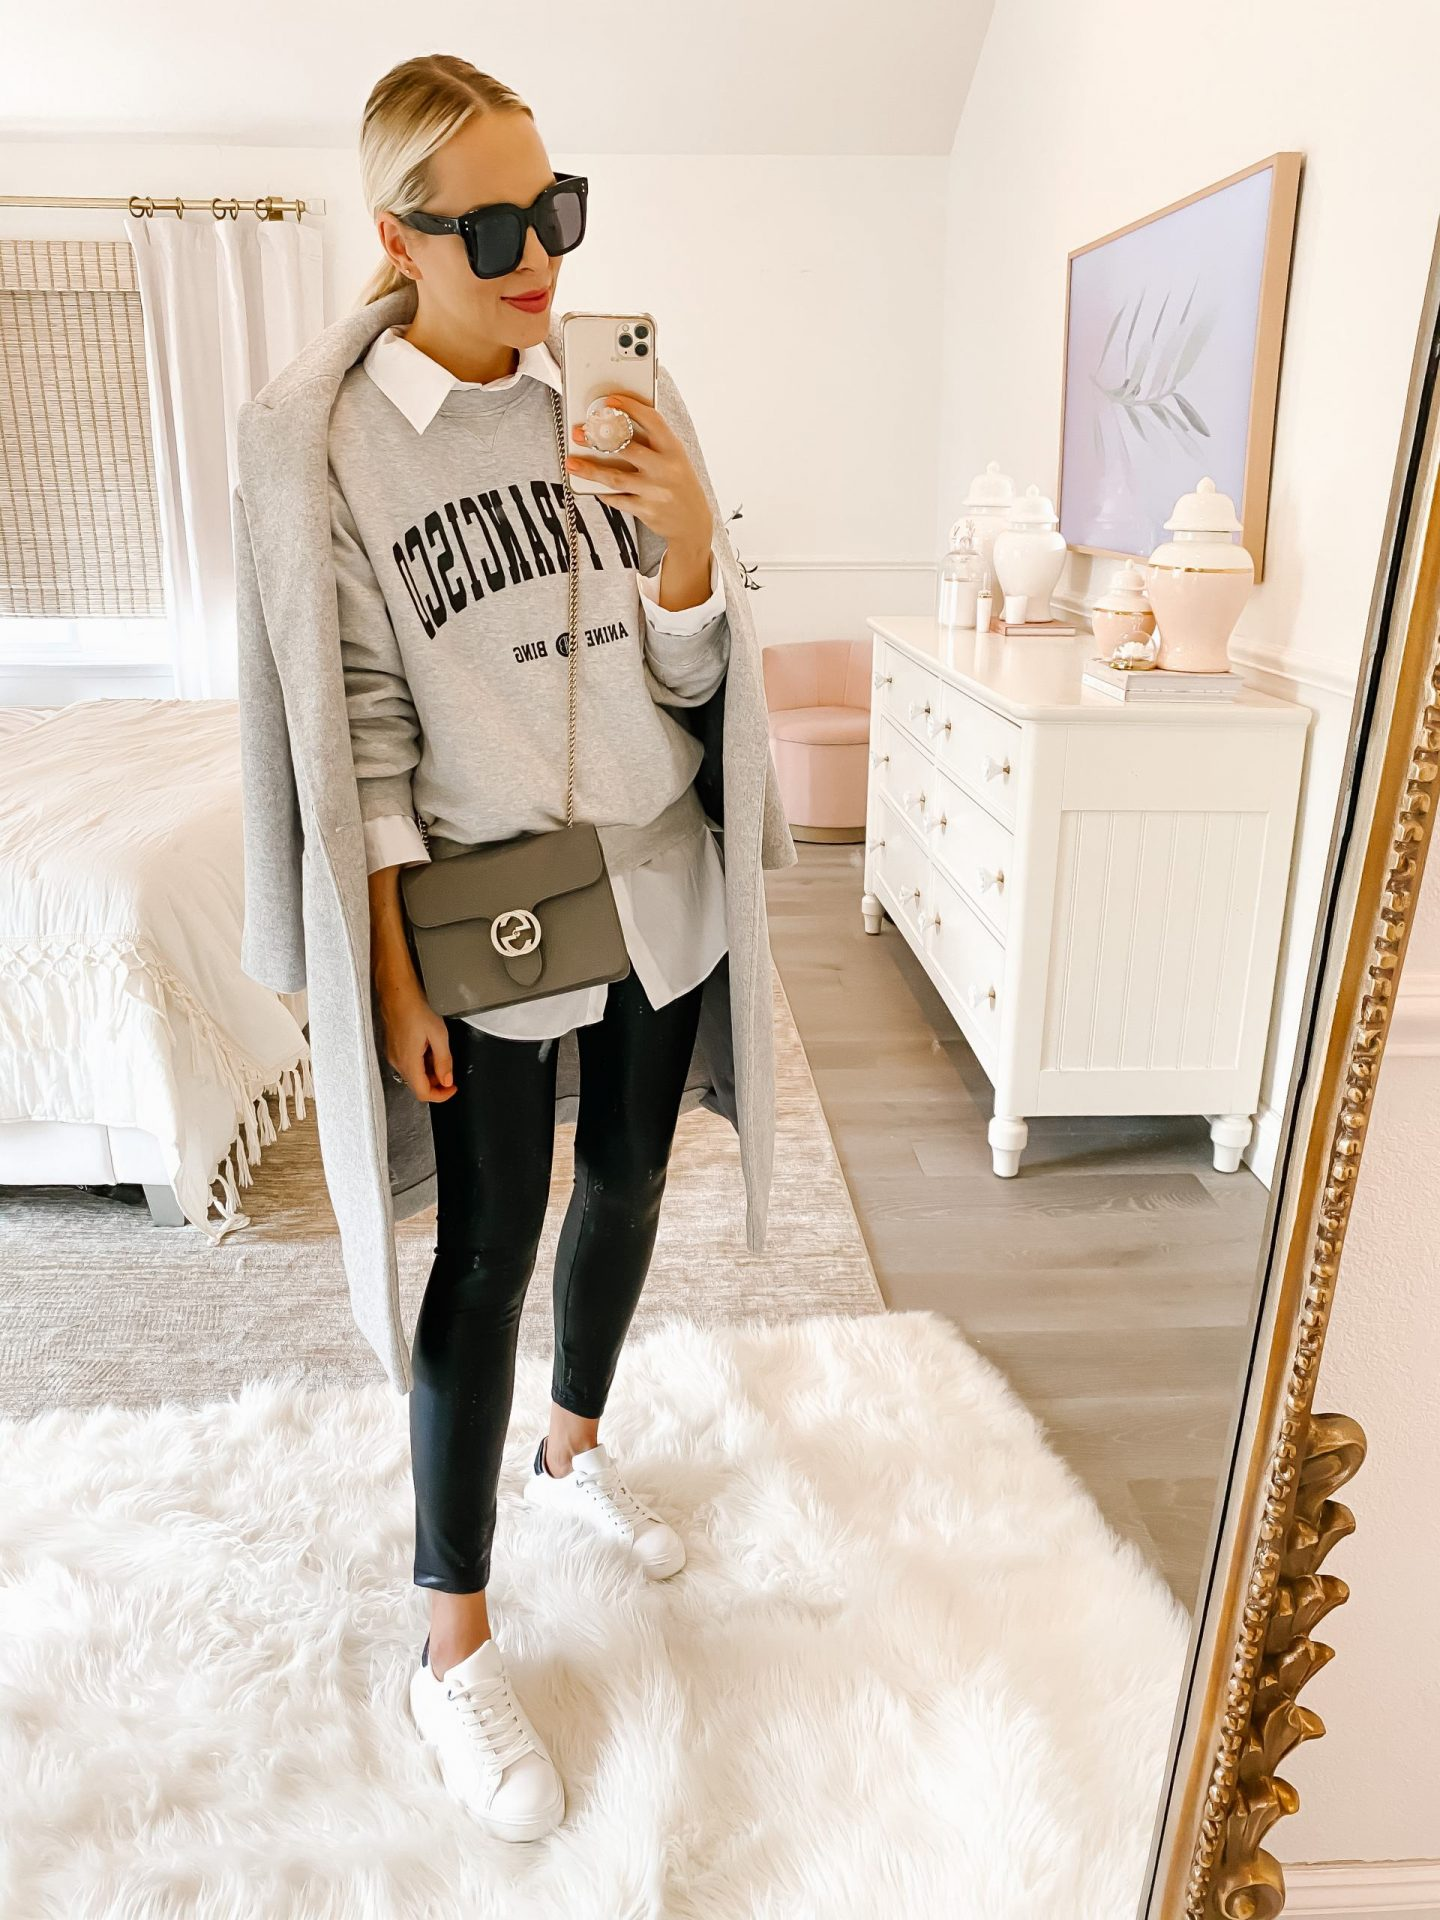 How to style casual chic layers and leggings for winter, by fashion blogger Lombard & Fifth. Express Sherpa white coat, commando leather leggings, Anine Bing sweatshirt, camel coat.